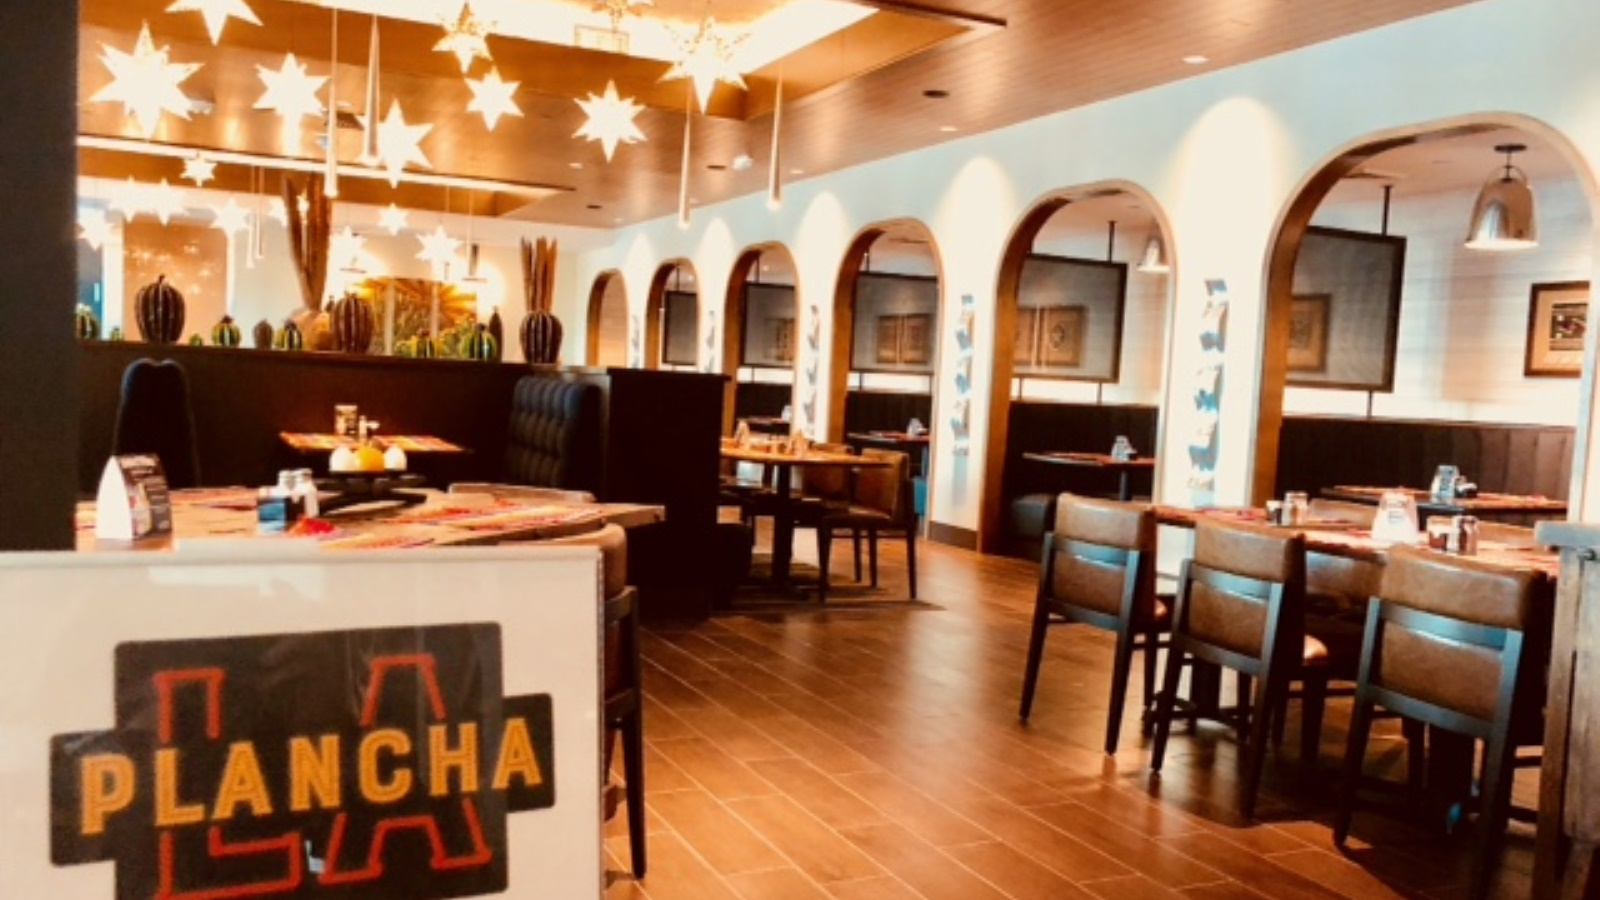 Restaurants in Mesa - La Plancha